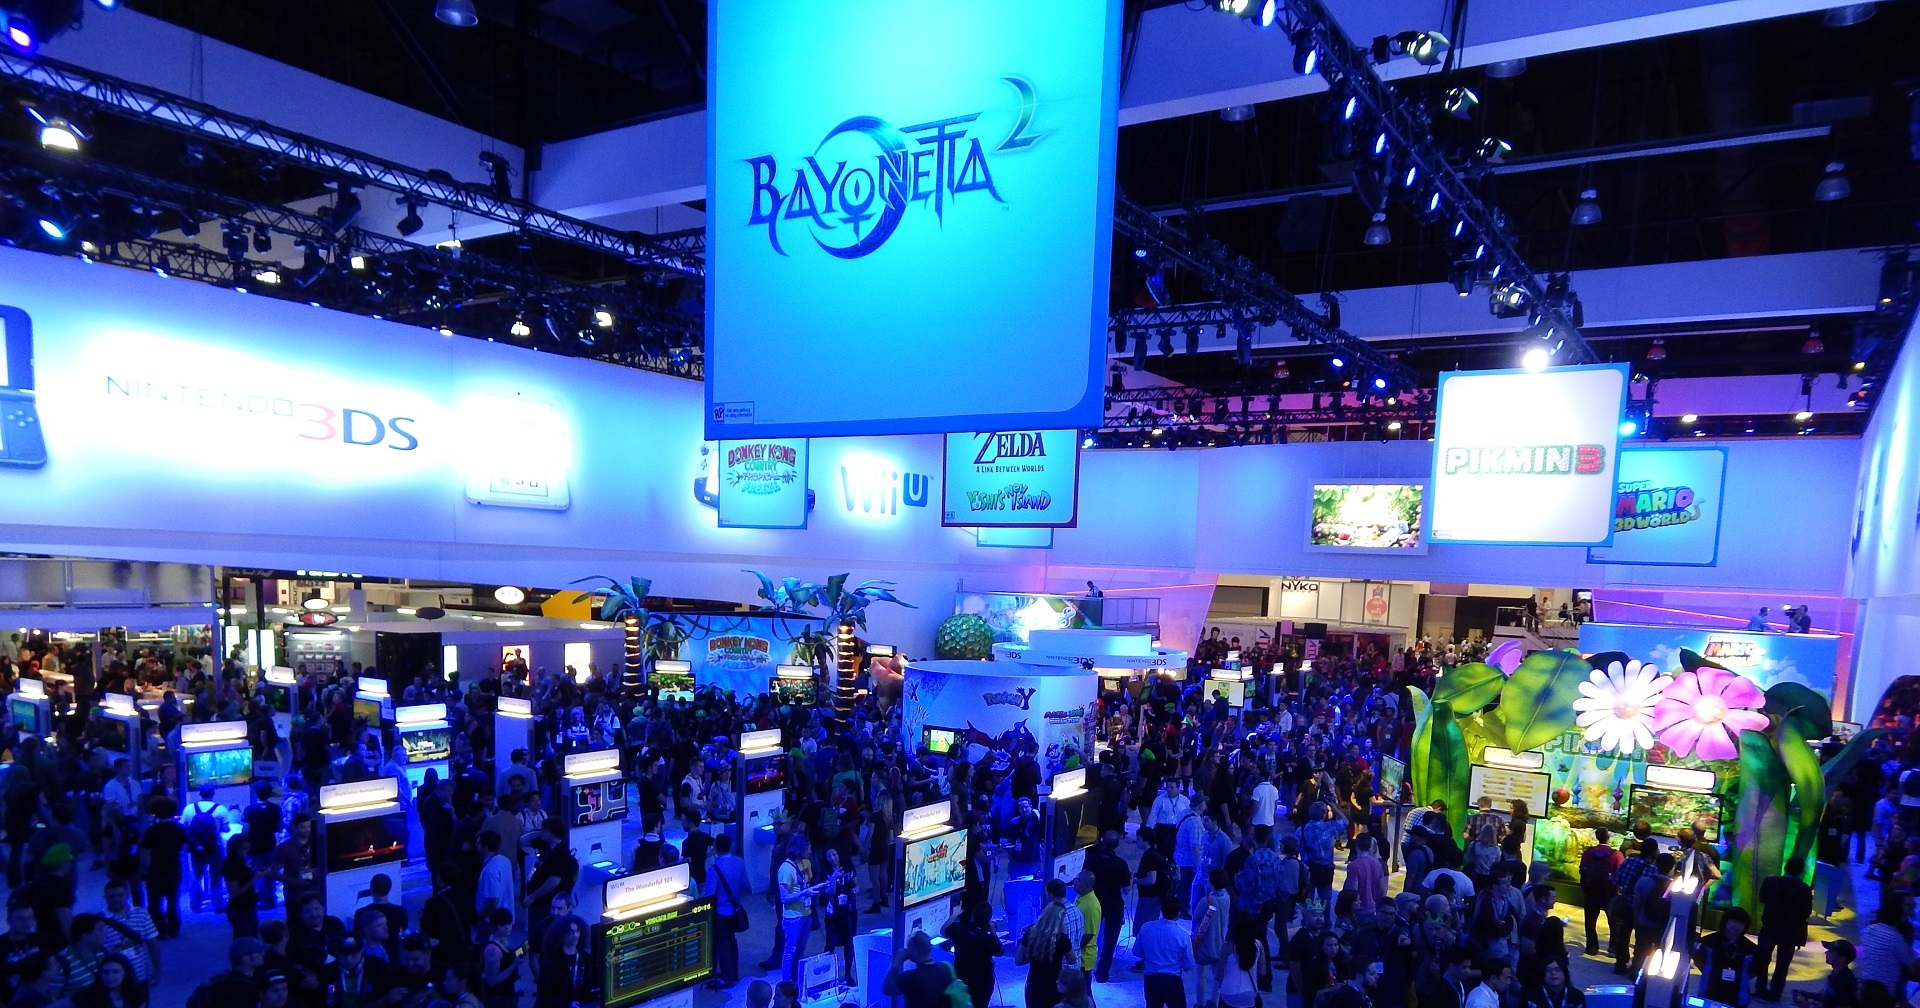 Nintendo Announces Lineup For PAX Prime 2015